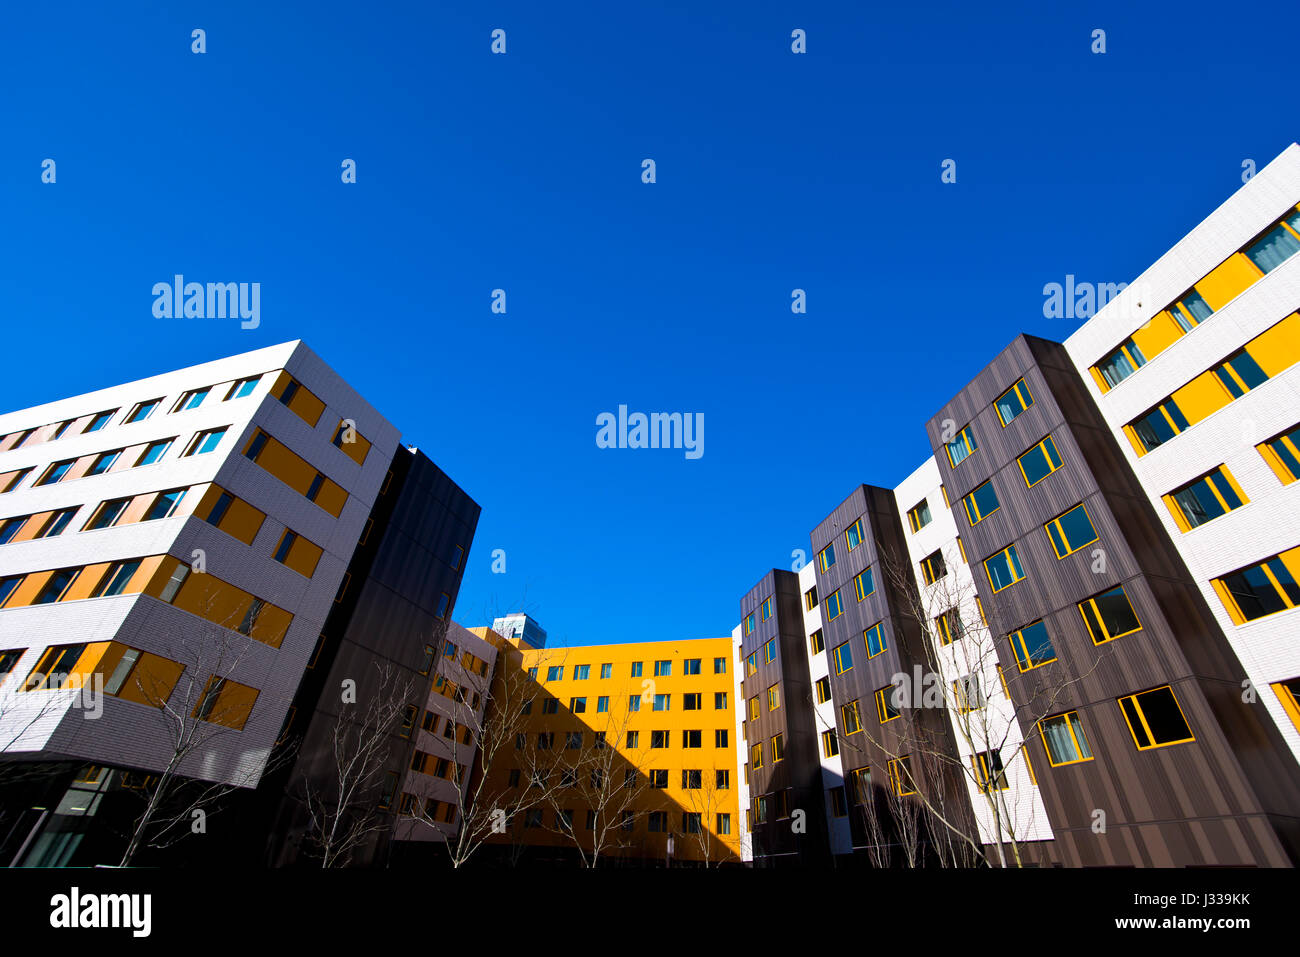 Modern and stylish multistory buildings white yellow and brown colors strict urban design with rectangles of windows, - Stock Image